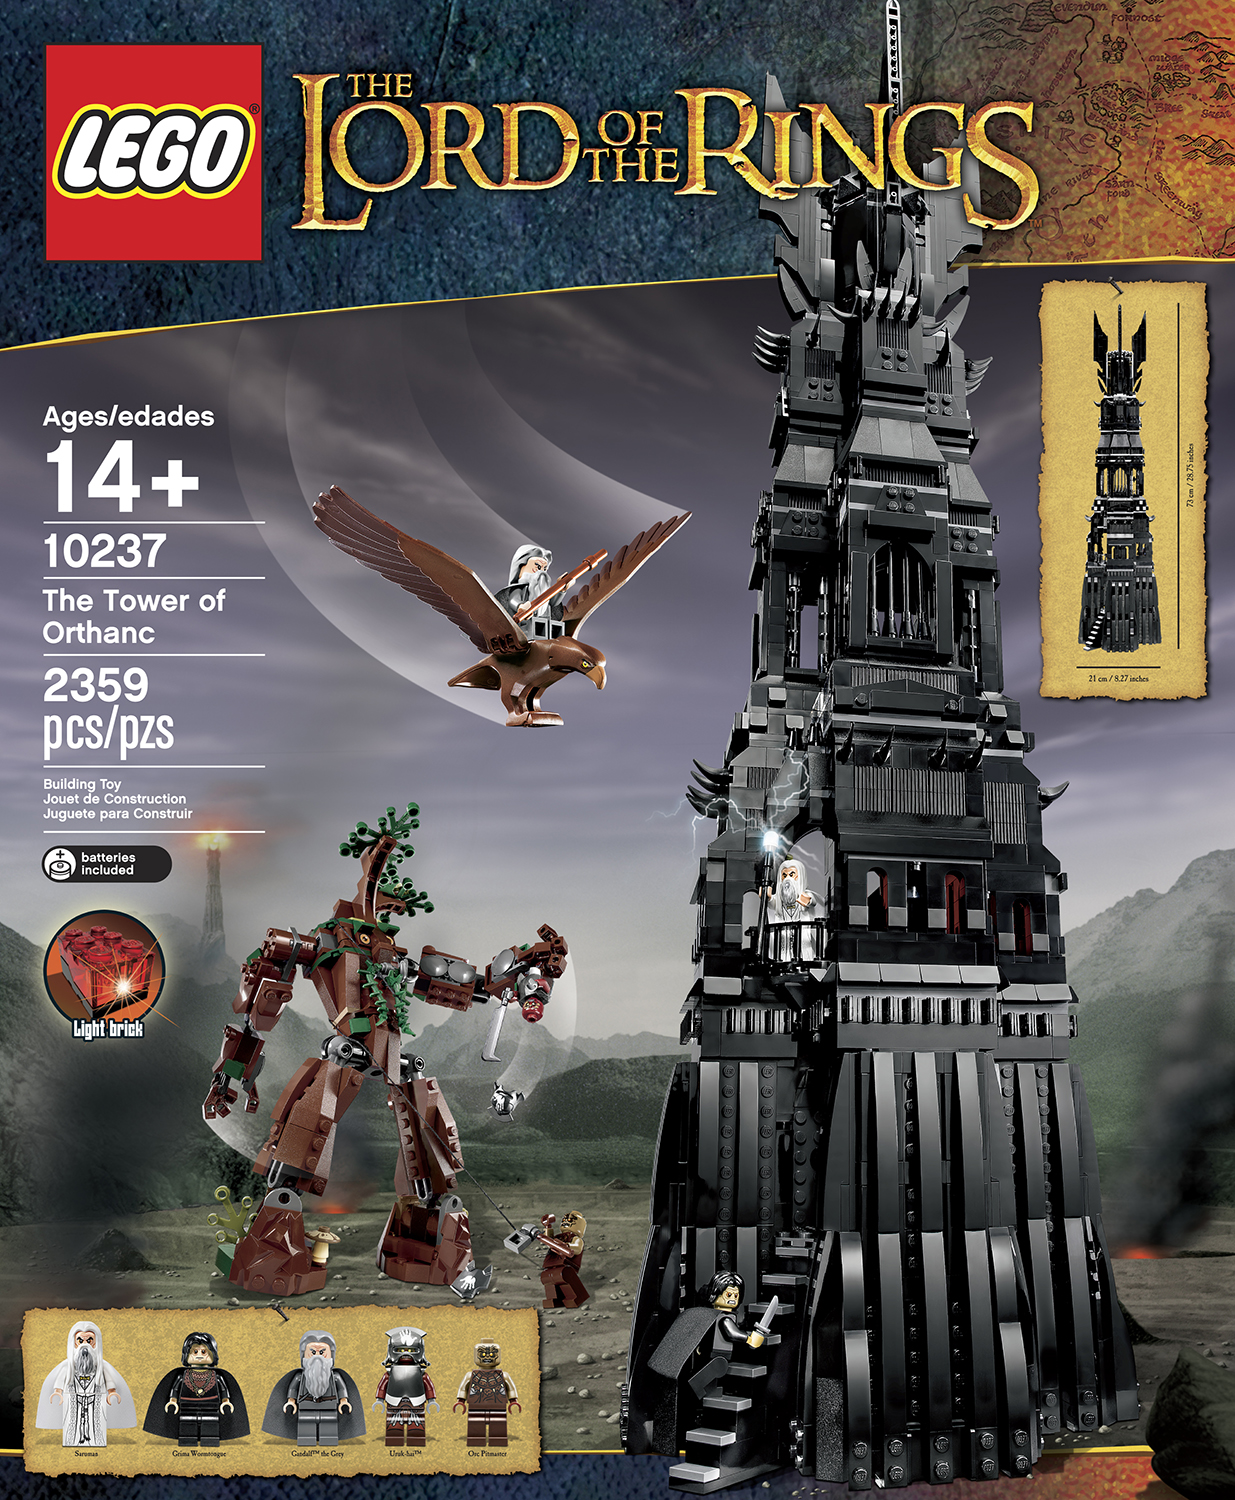 Tower of Sauron Lego Orthanc Lego Sauron Tower